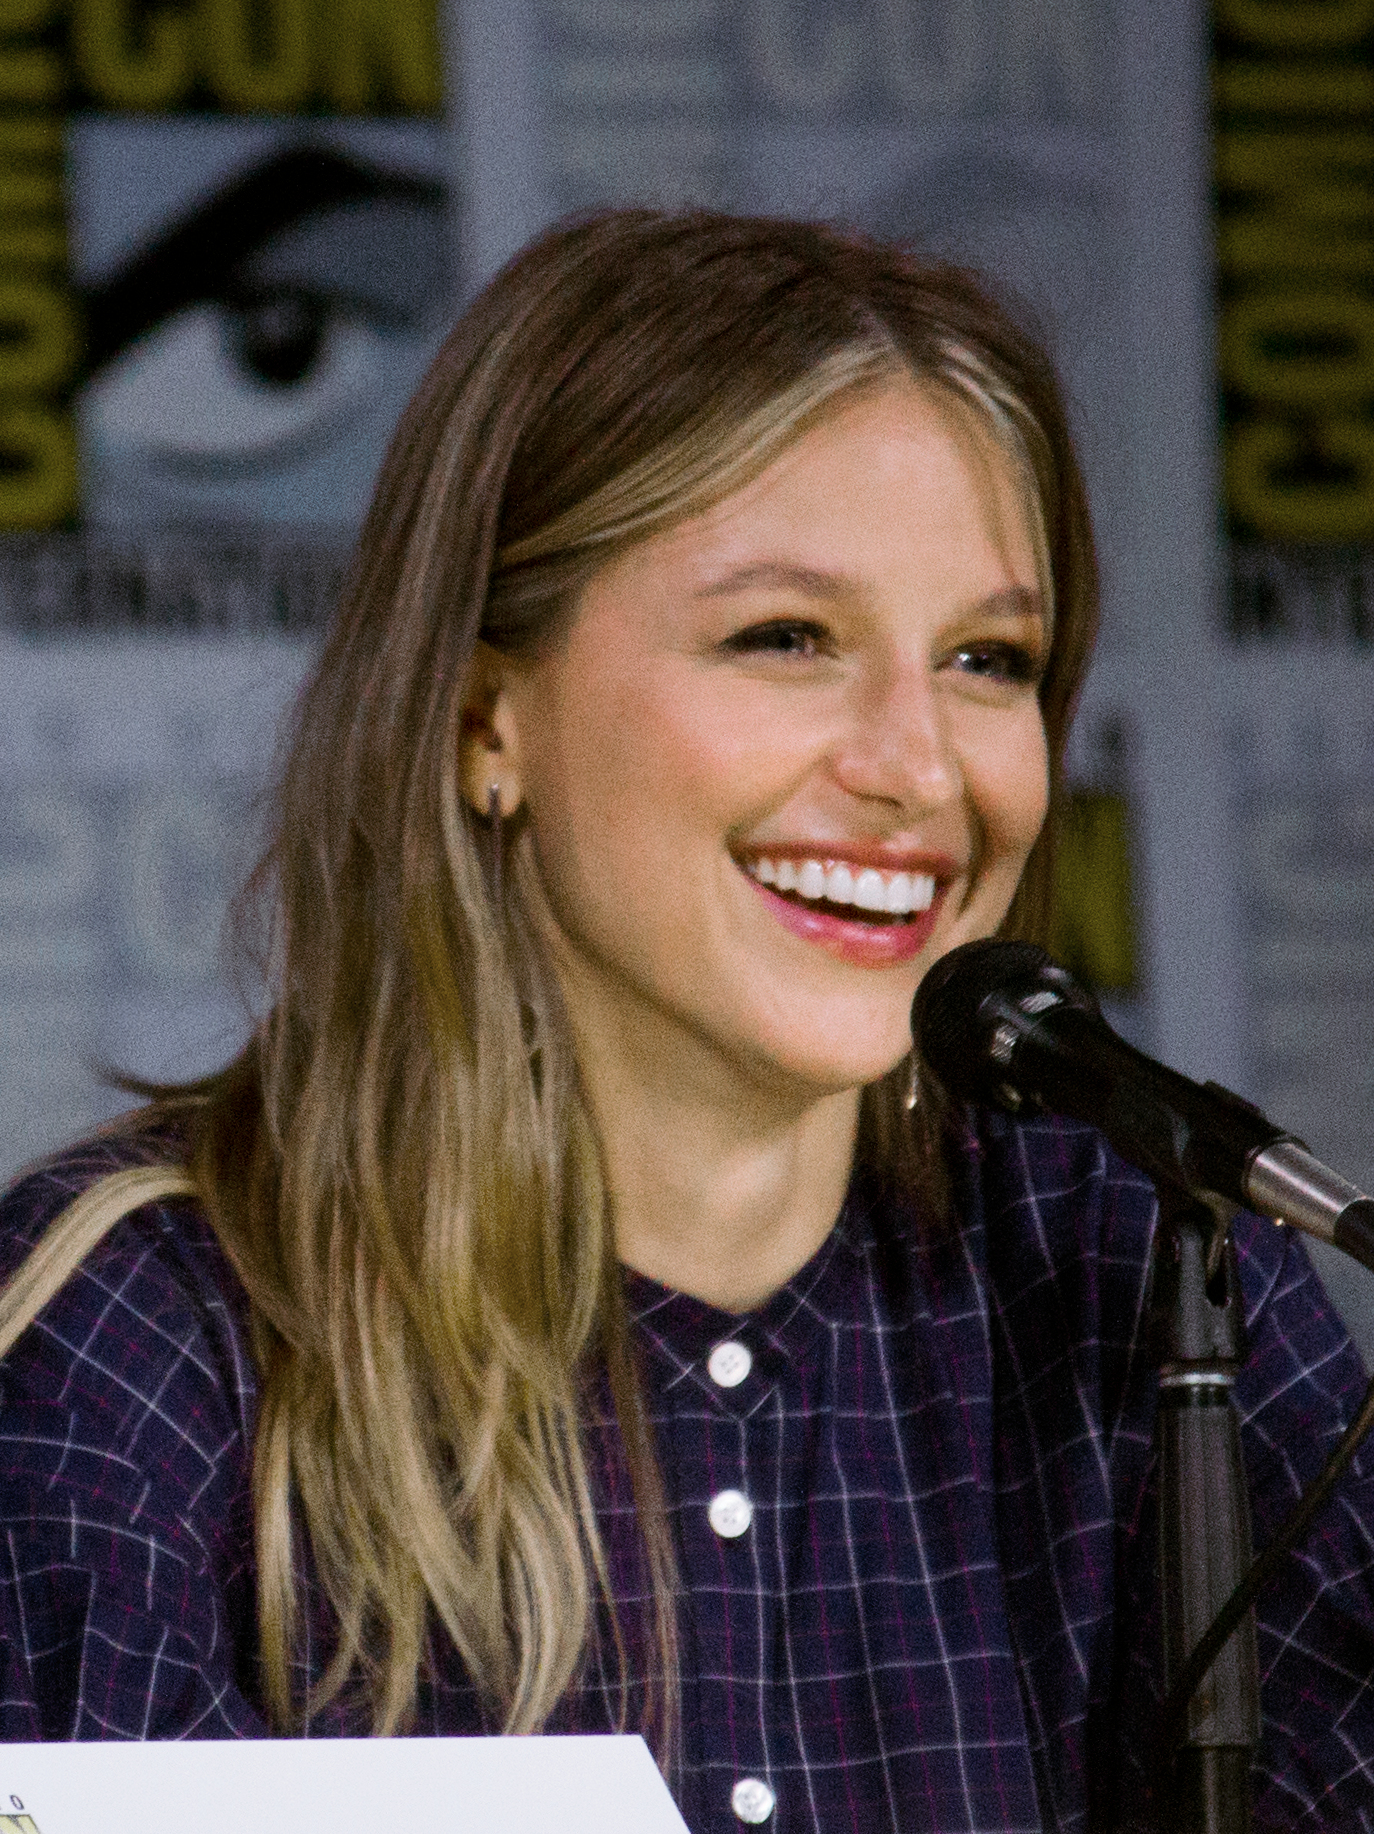 The 30-year old daughter of father Jim Benoist and mother Julie Benoist Melissa Benoist in 2019 photo. Melissa Benoist earned a  million dollar salary - leaving the net worth at 1 million in 2019